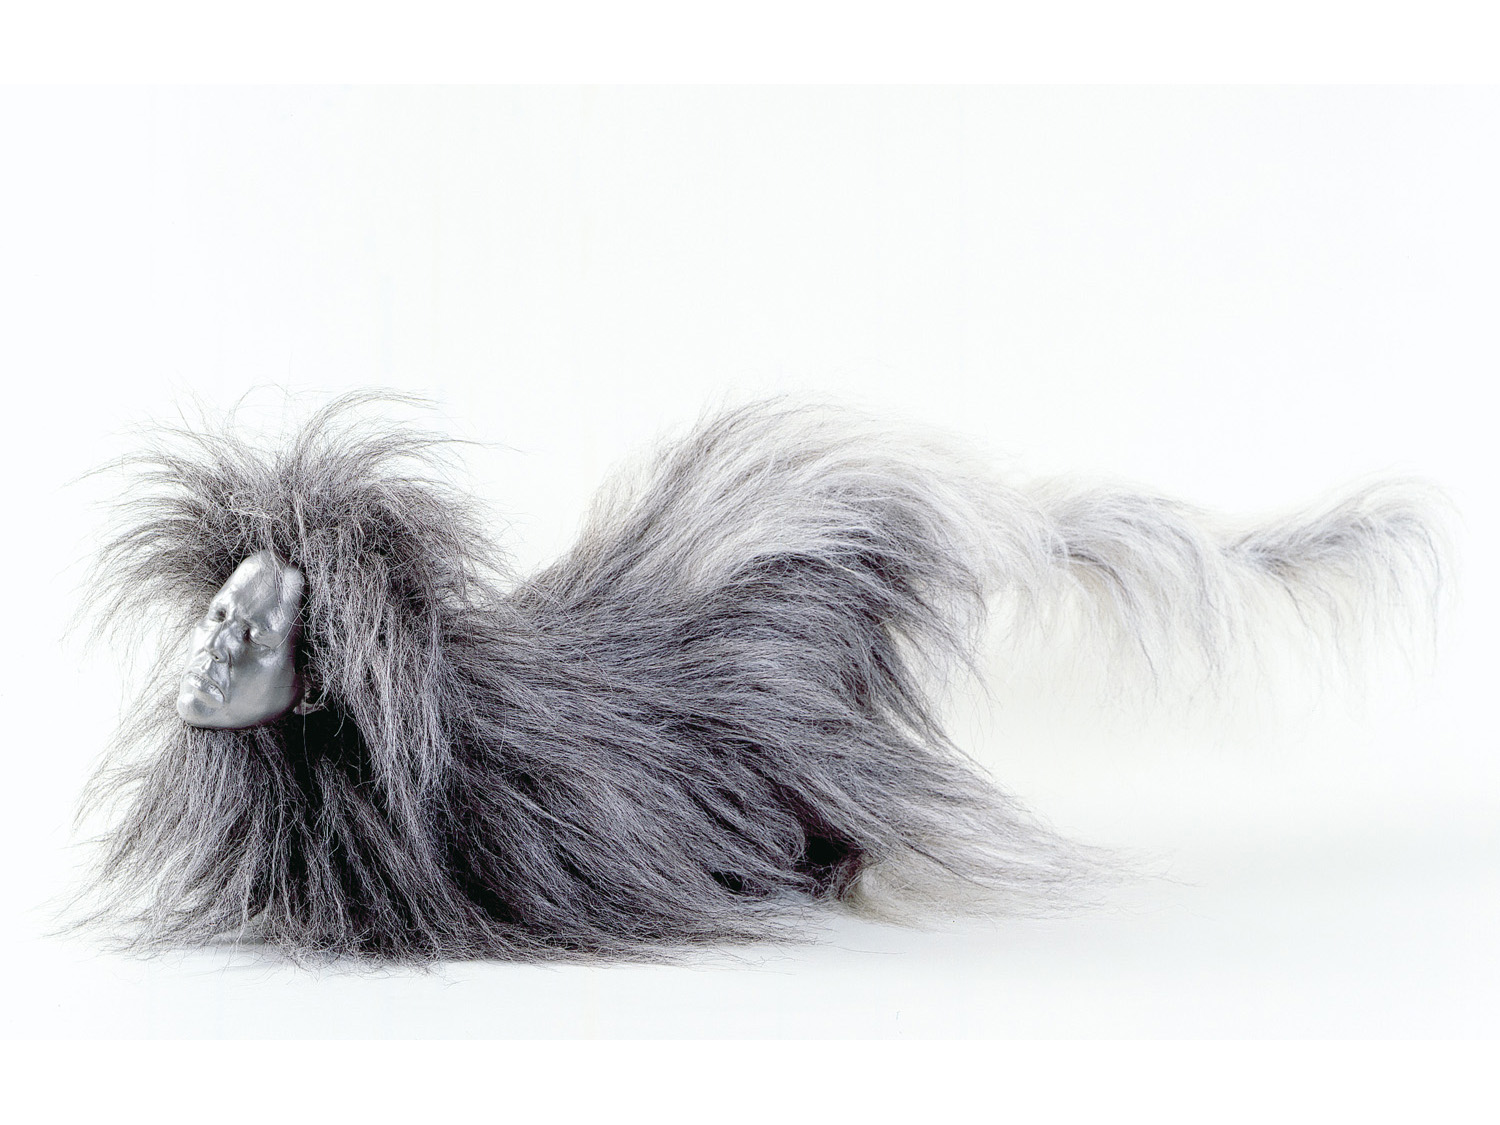 01_monkey_with_hair_grey_with_white_tail_new.jpg